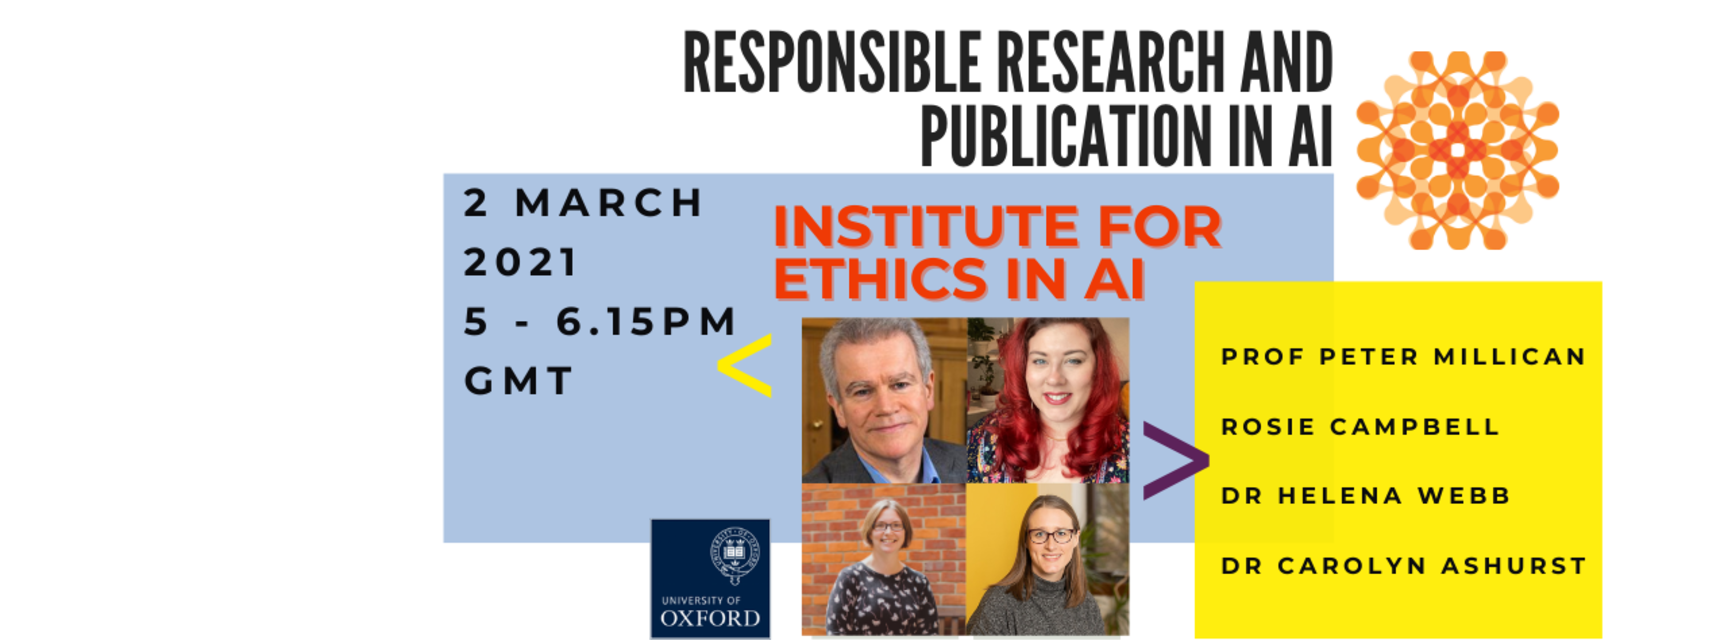 Four small photos of Prof Peter Millican, Rose Campbell, Dr Helena Webb, Dr Carolyn Ashurst. Blue and yellow boxes contain text reading 'Responsible research and publication in AI. Institute for Ethics in AI. 2 March 2021, 5-6.15pm GMT.